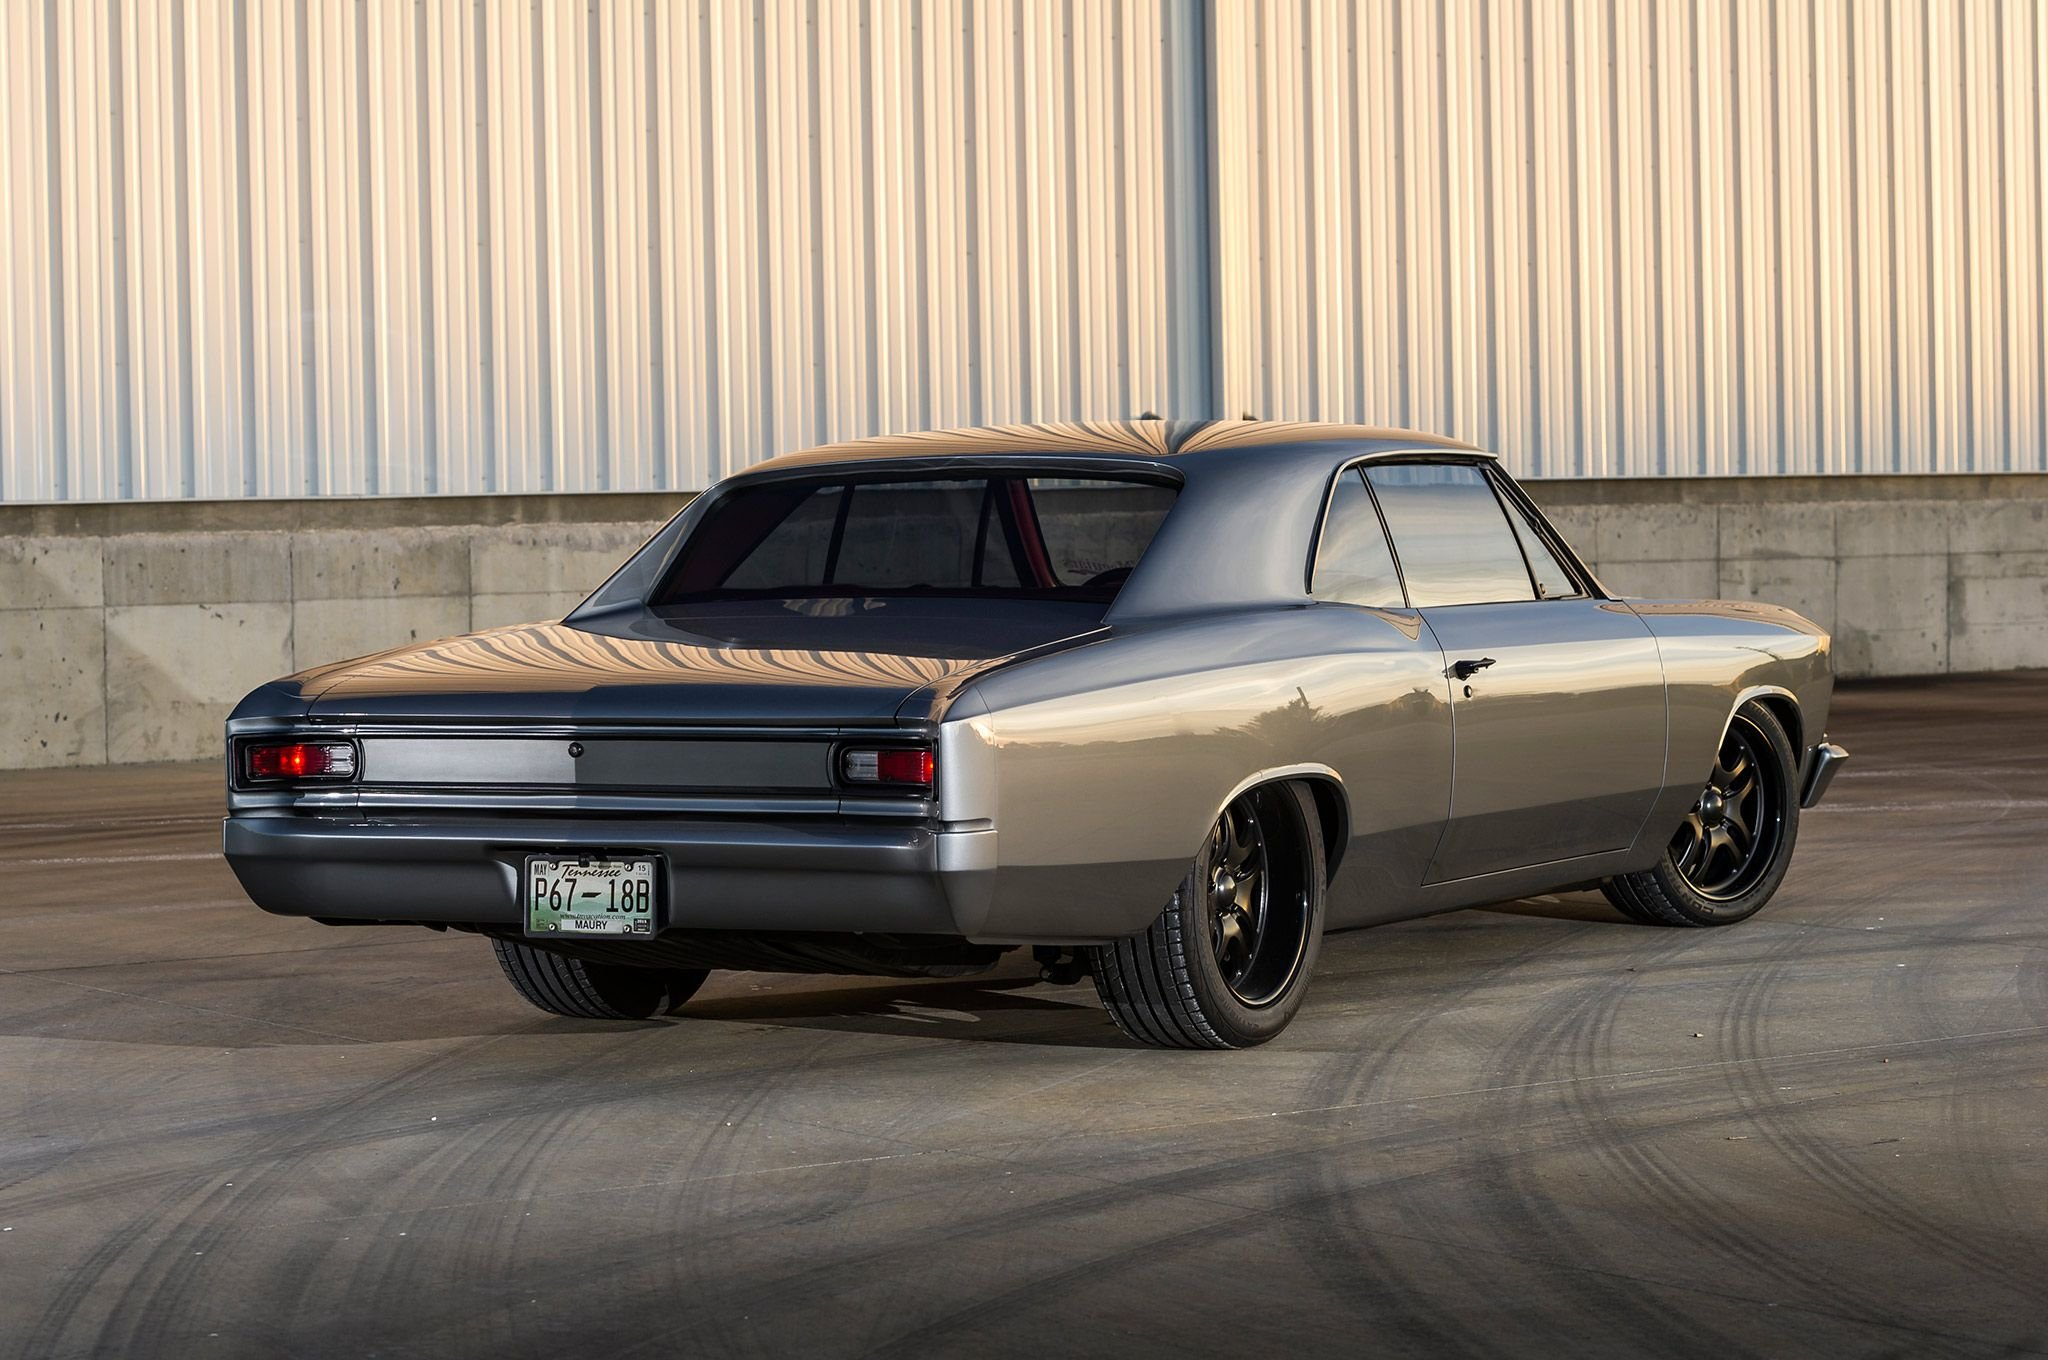 Wallpaper Super Cars Download 1966 Chevrolet Chevy Chevelle Super Street Pro Touring Hot